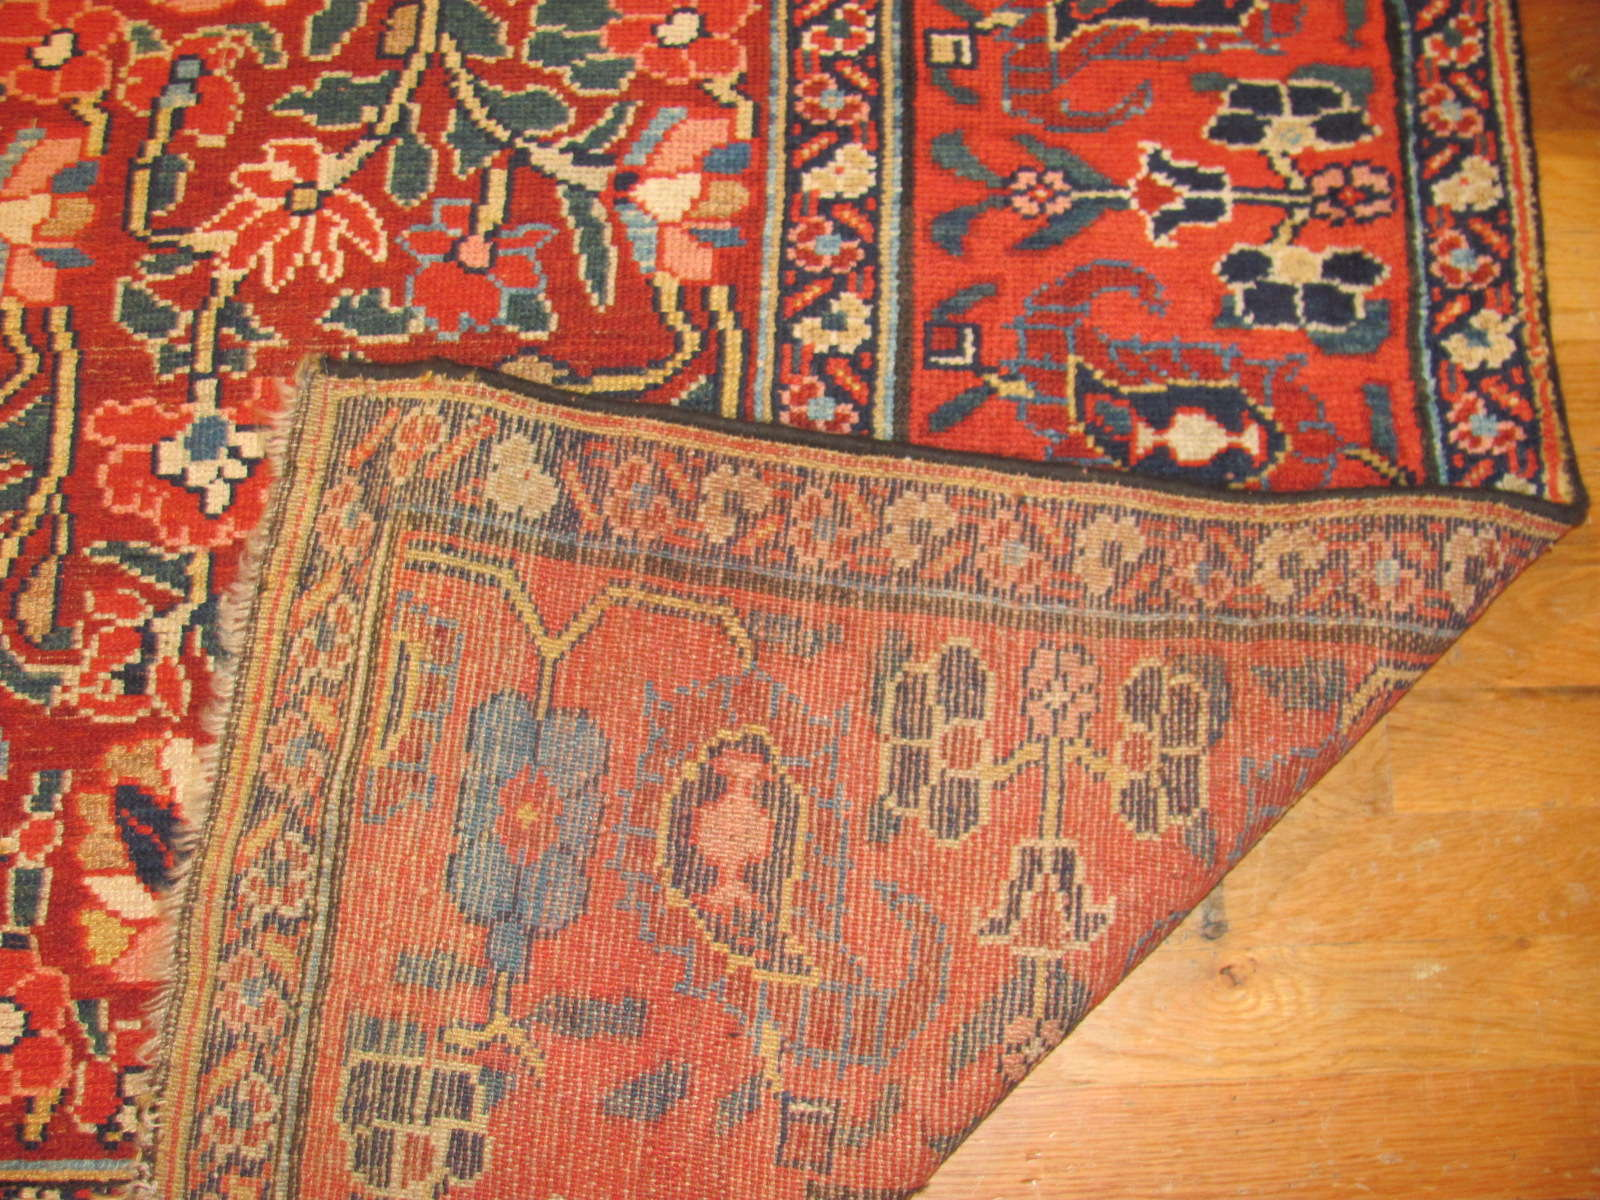 24458 antique persian kurd rug 4,5x10,8 -3